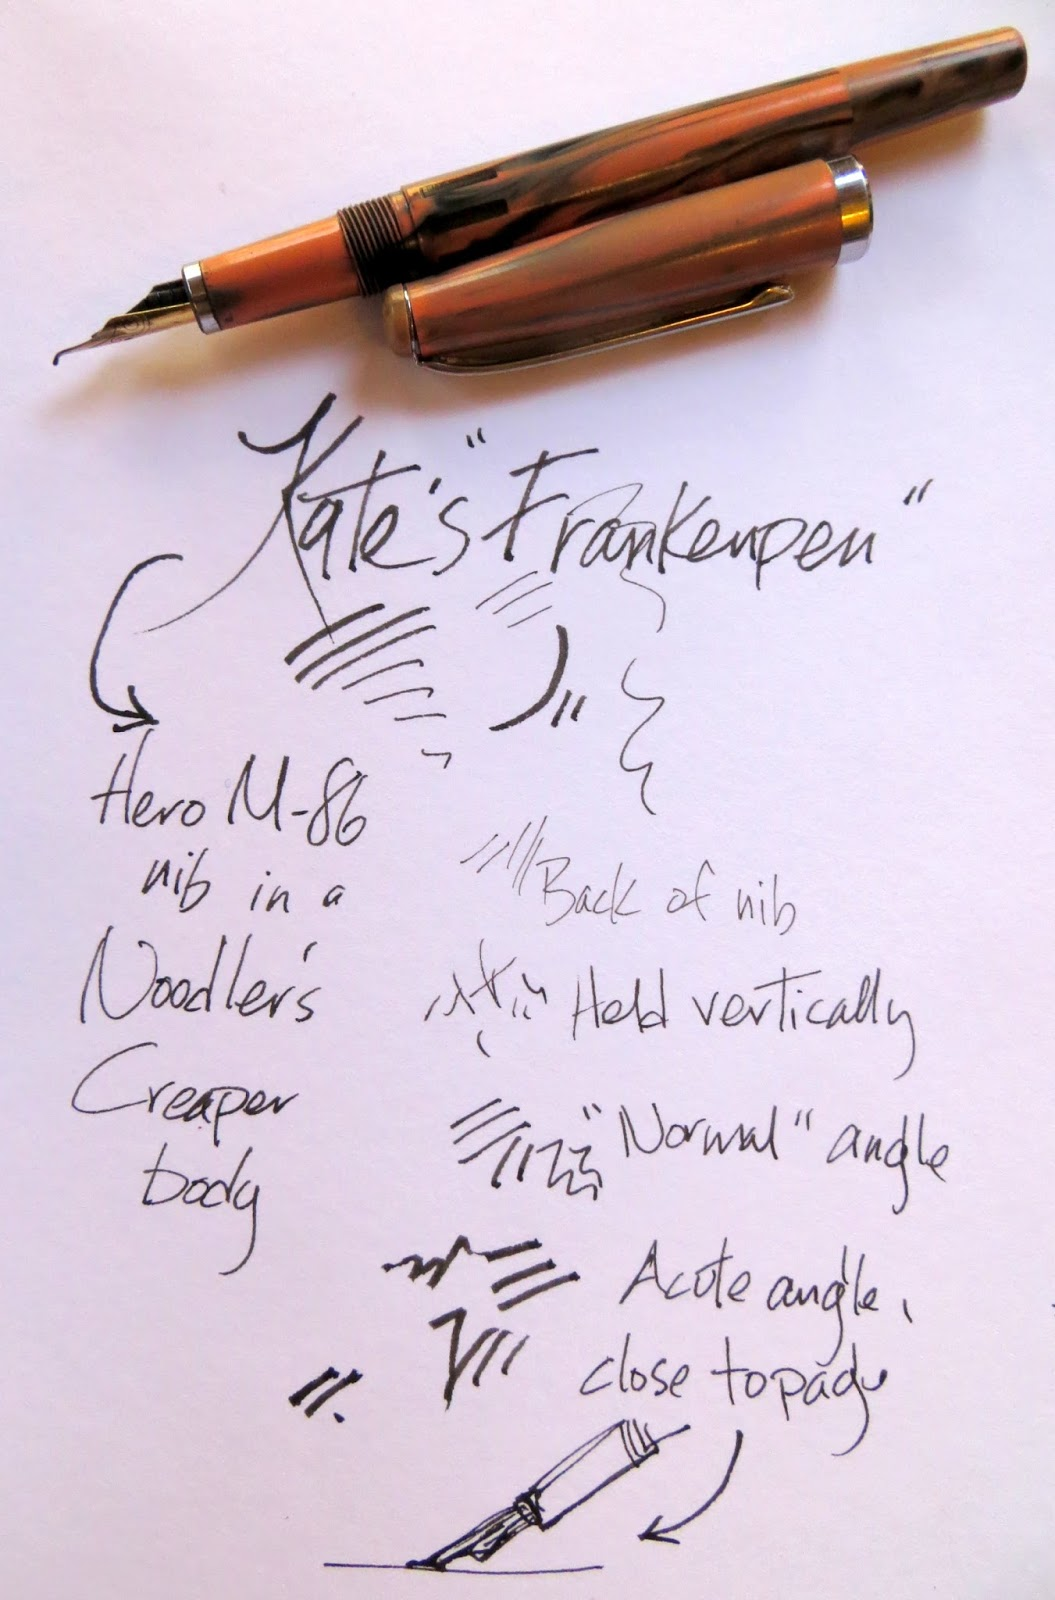 Artists 39 Journal Workshop Kate 39 S Frankenpen Part Two